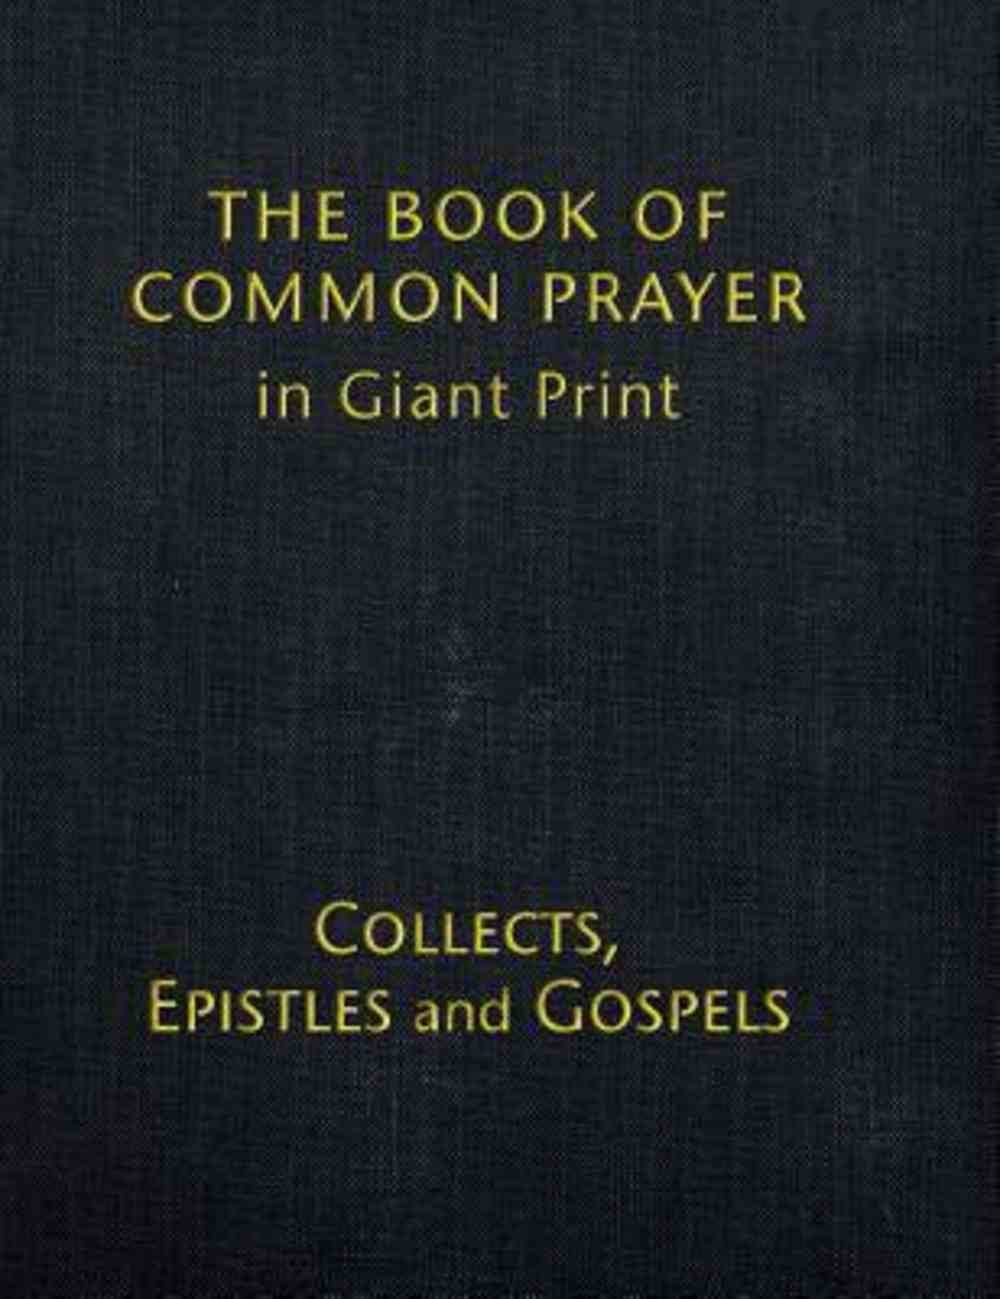 Book of Common Prayer (Volume 2) Black (Giant Print) Hardback